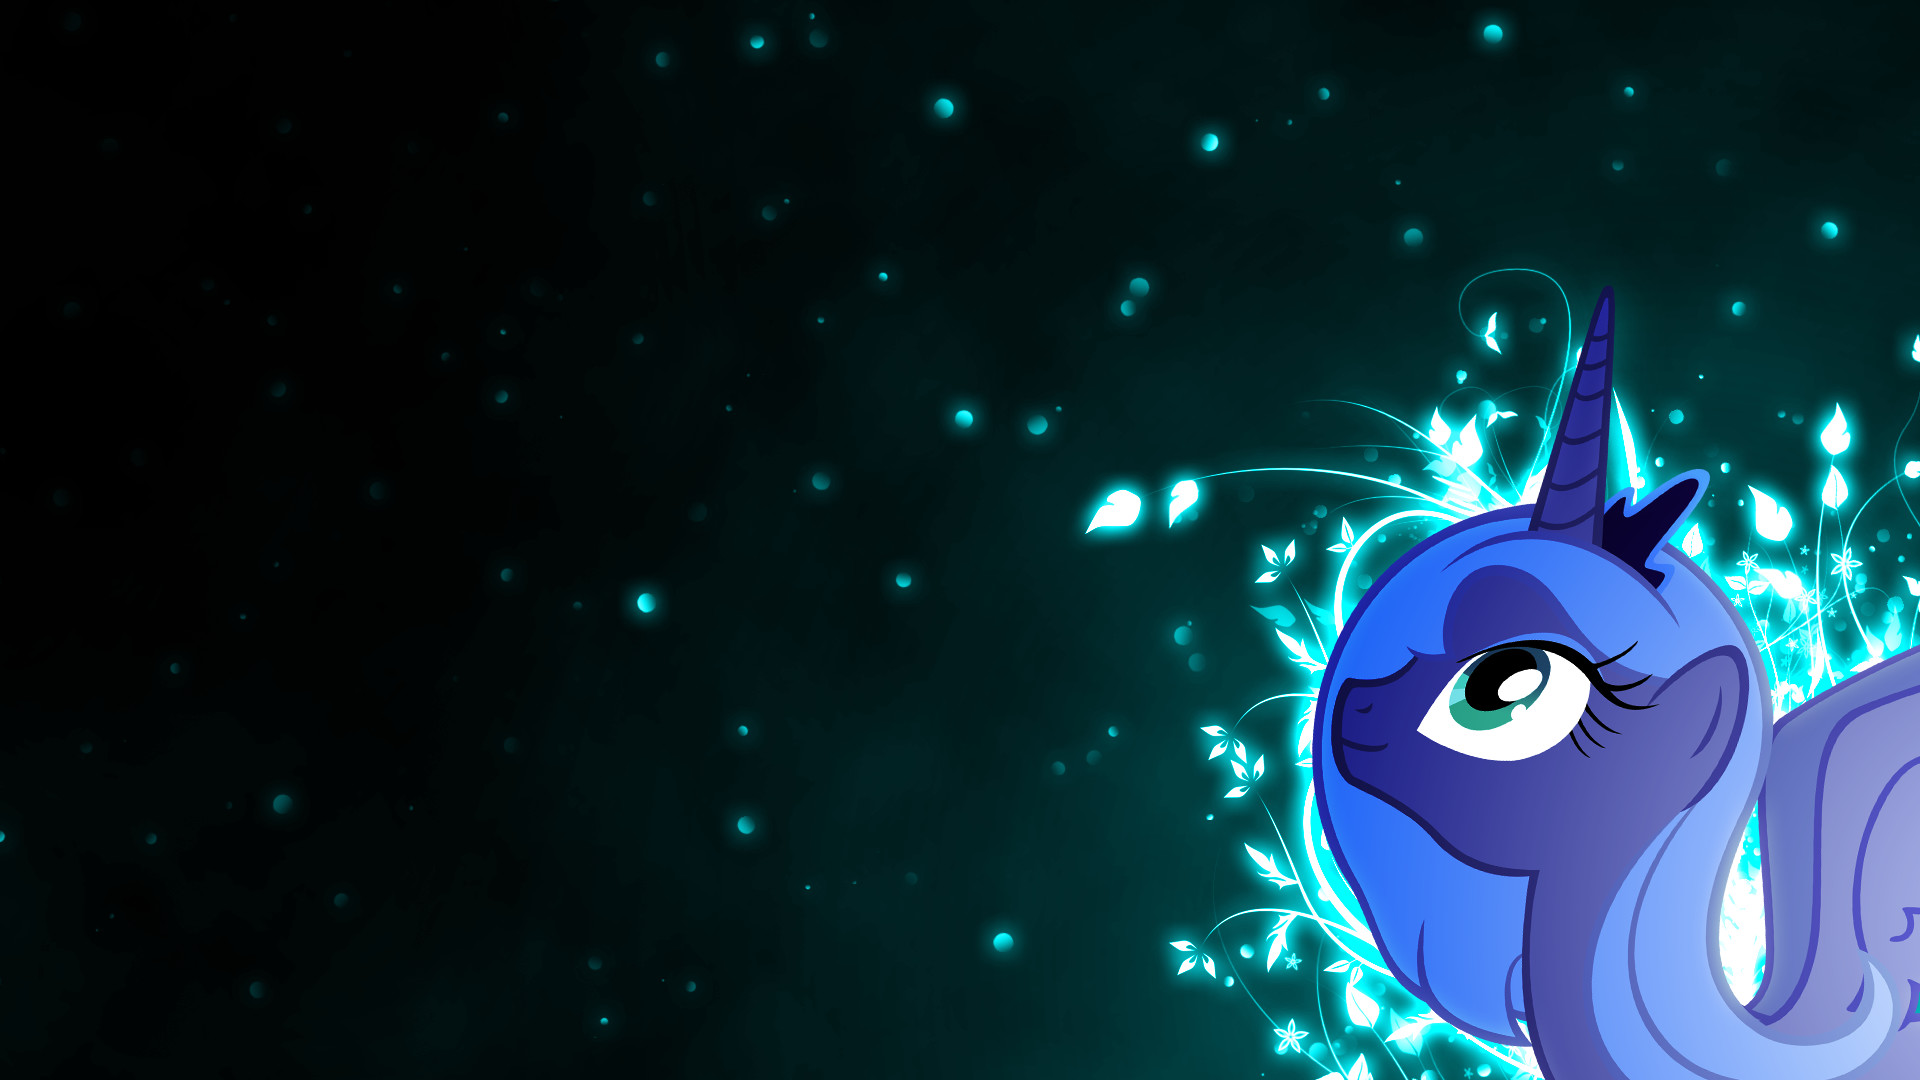 1920x1080 My Little Pony HD Wallpapers - Wallpaper Cave